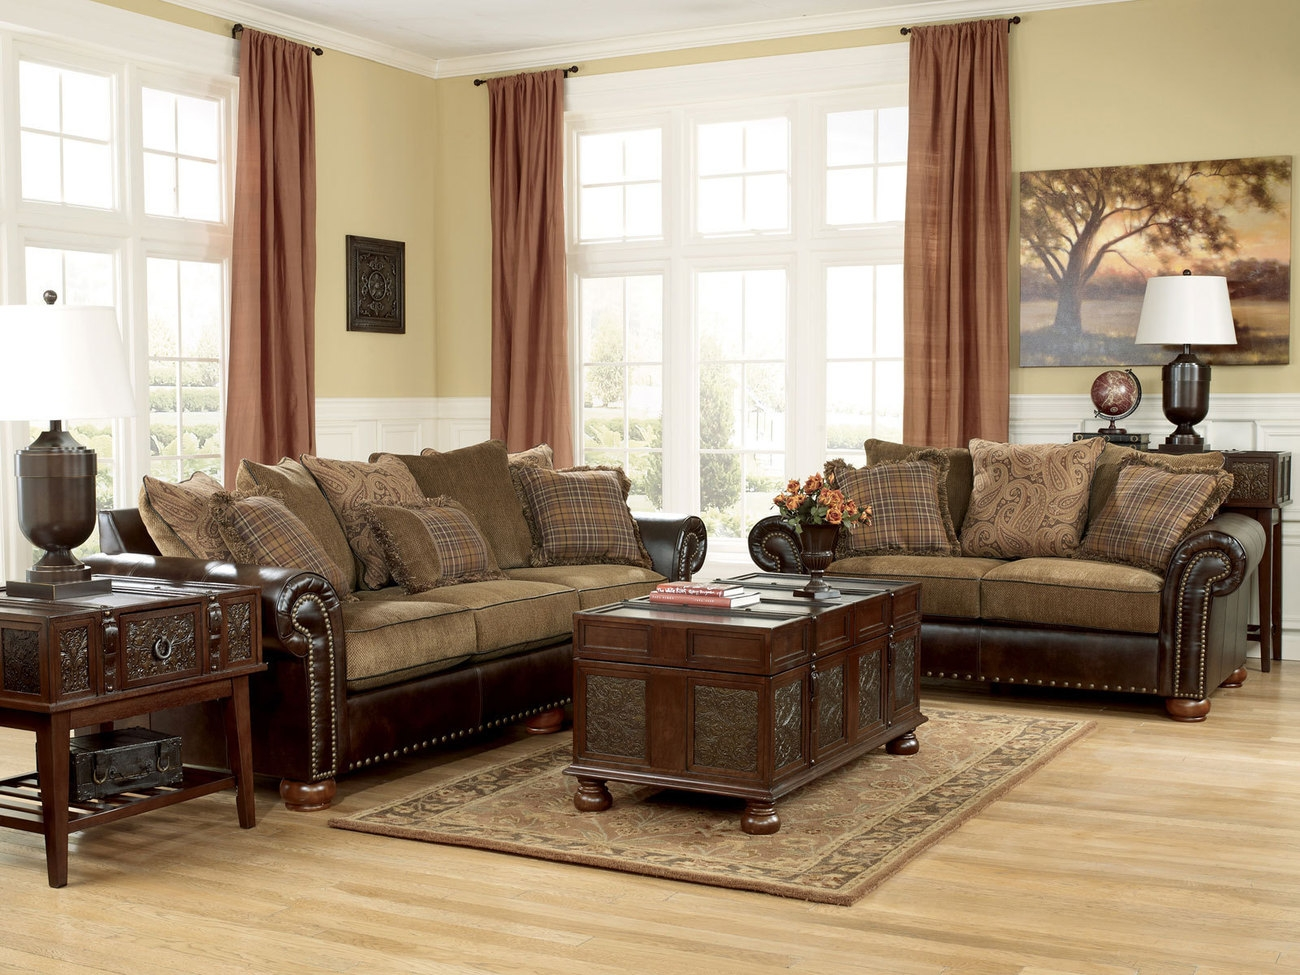 Chenille And Leather Sectional Sofa Hereo Sofa Intended For Chenille And Leather Sectional Sofa (#4 of 12)